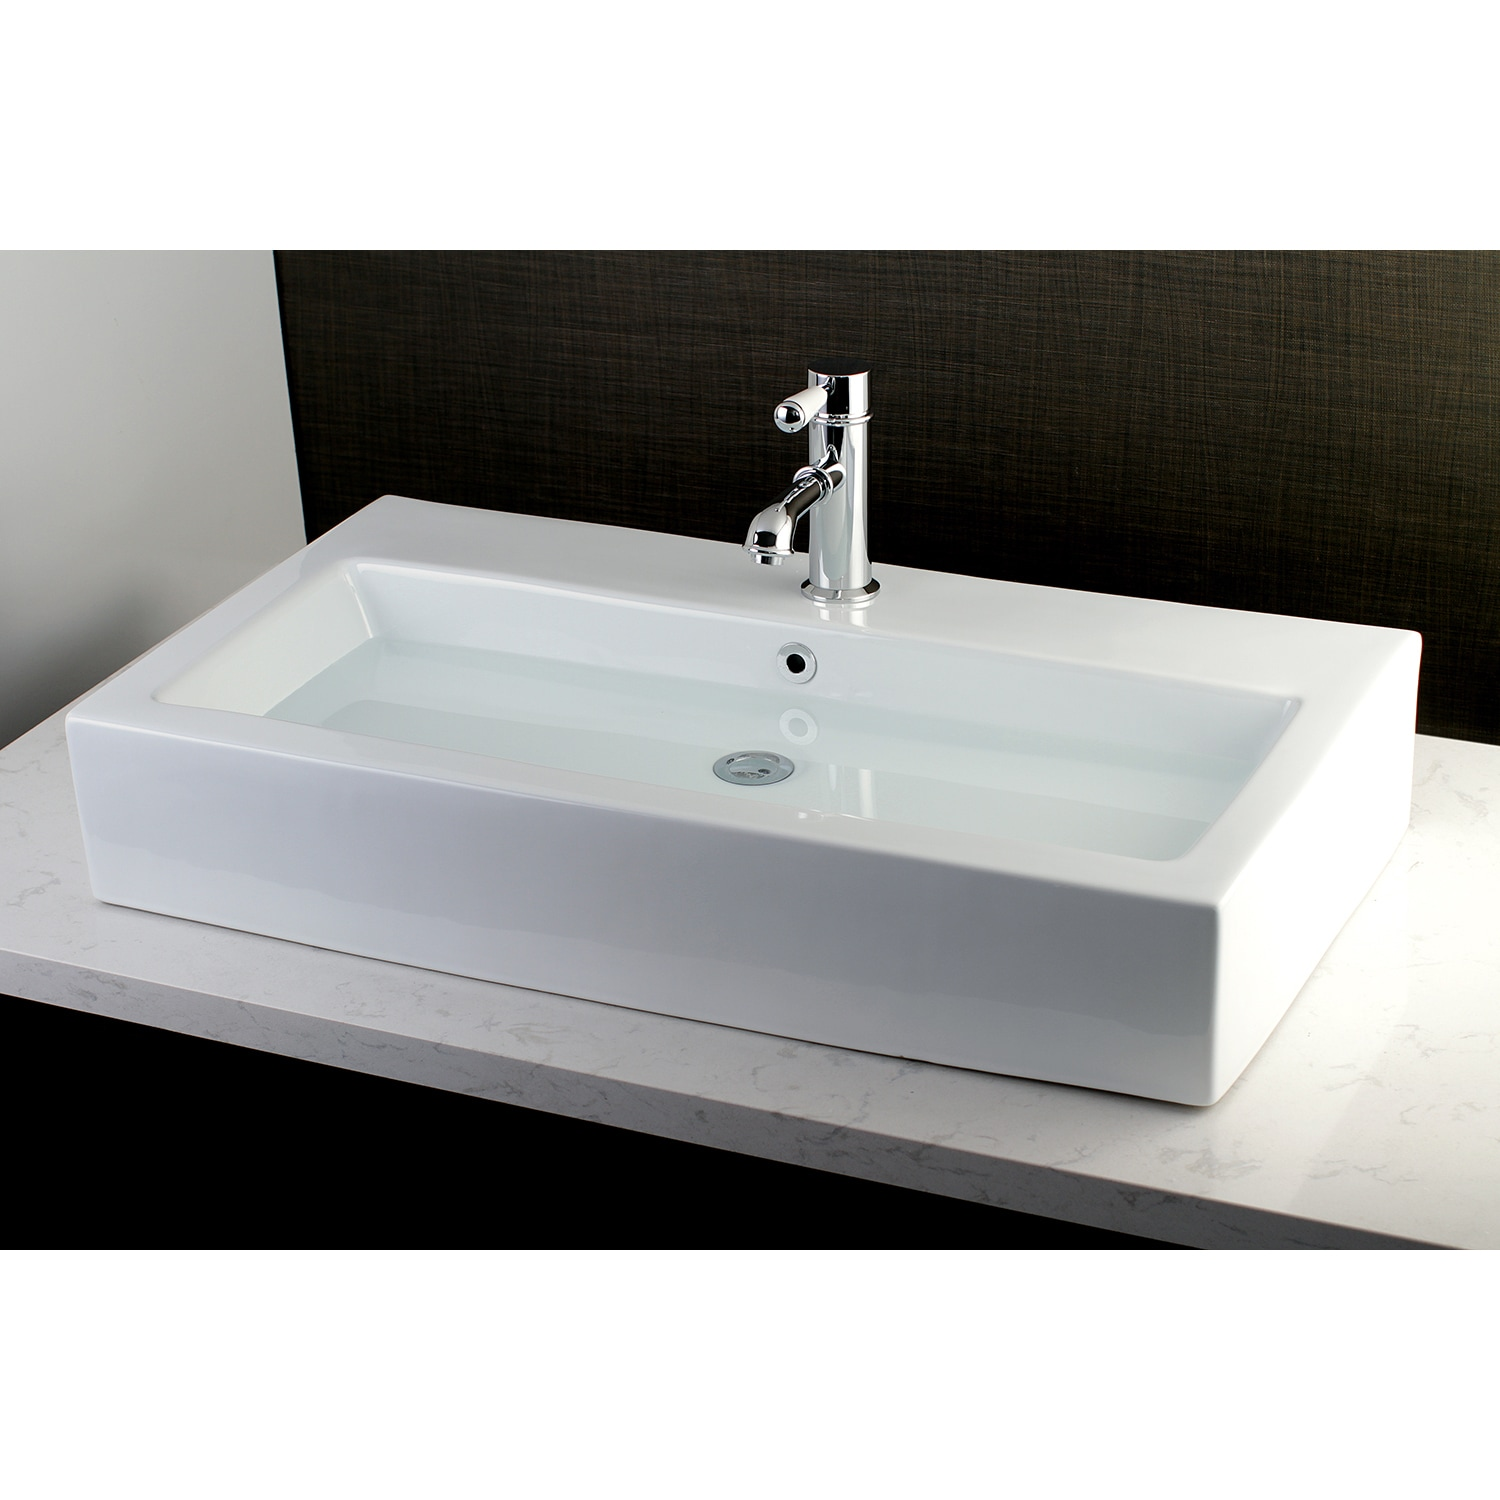 Contemporary Large 32 Inch Elongated Vessel Bathroom Sink On Sale Overstock 14663112